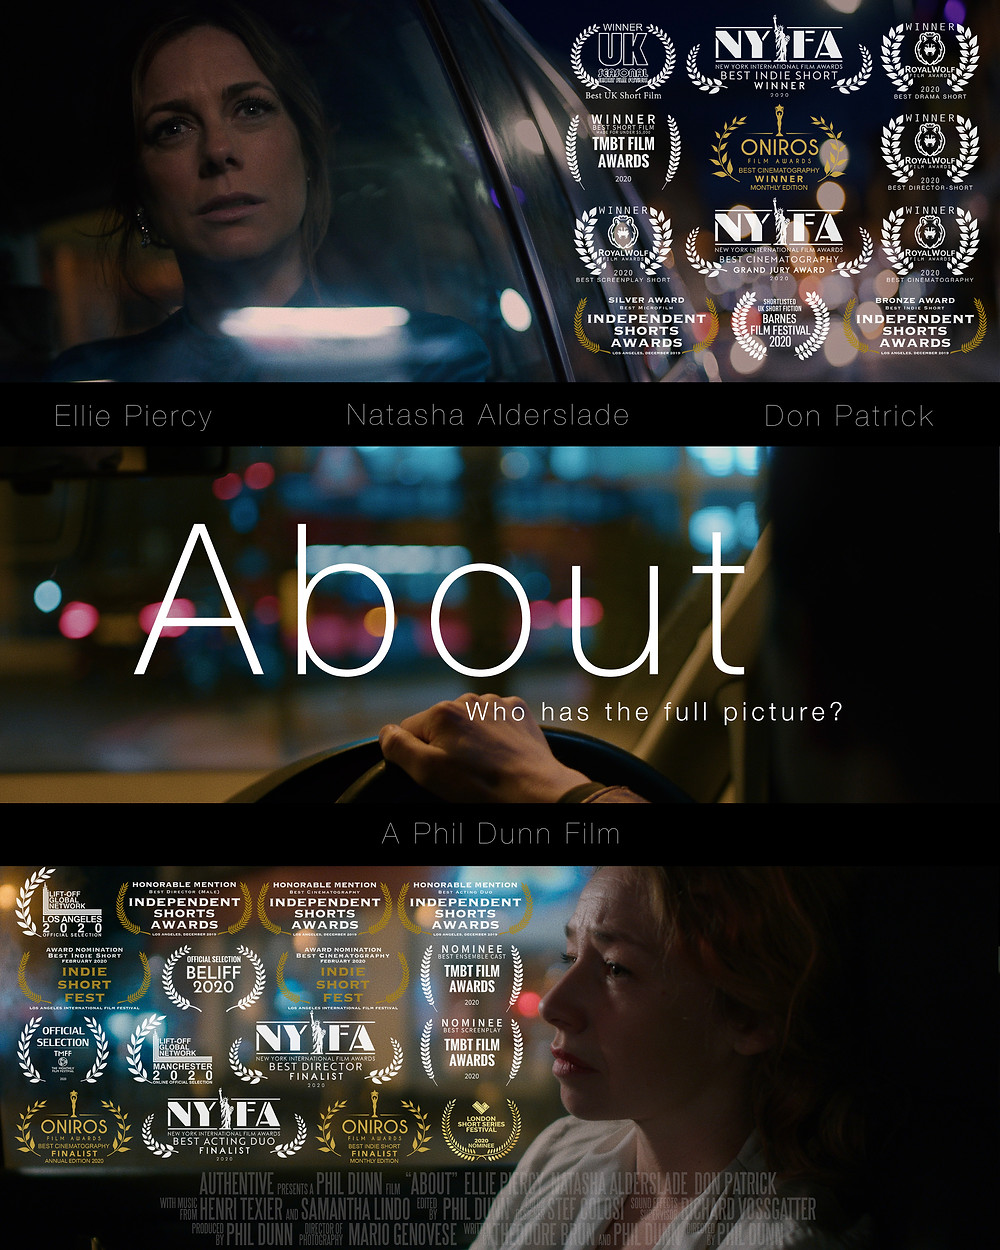 Poster of the film showing three pictures of the film's main characters in a car. Top one of the character Rebecca looking out the passenger window, the middle of the driver's POV, the bottom one of Caitlin looking forward. The poser is also covered in accolades from various film festivals.